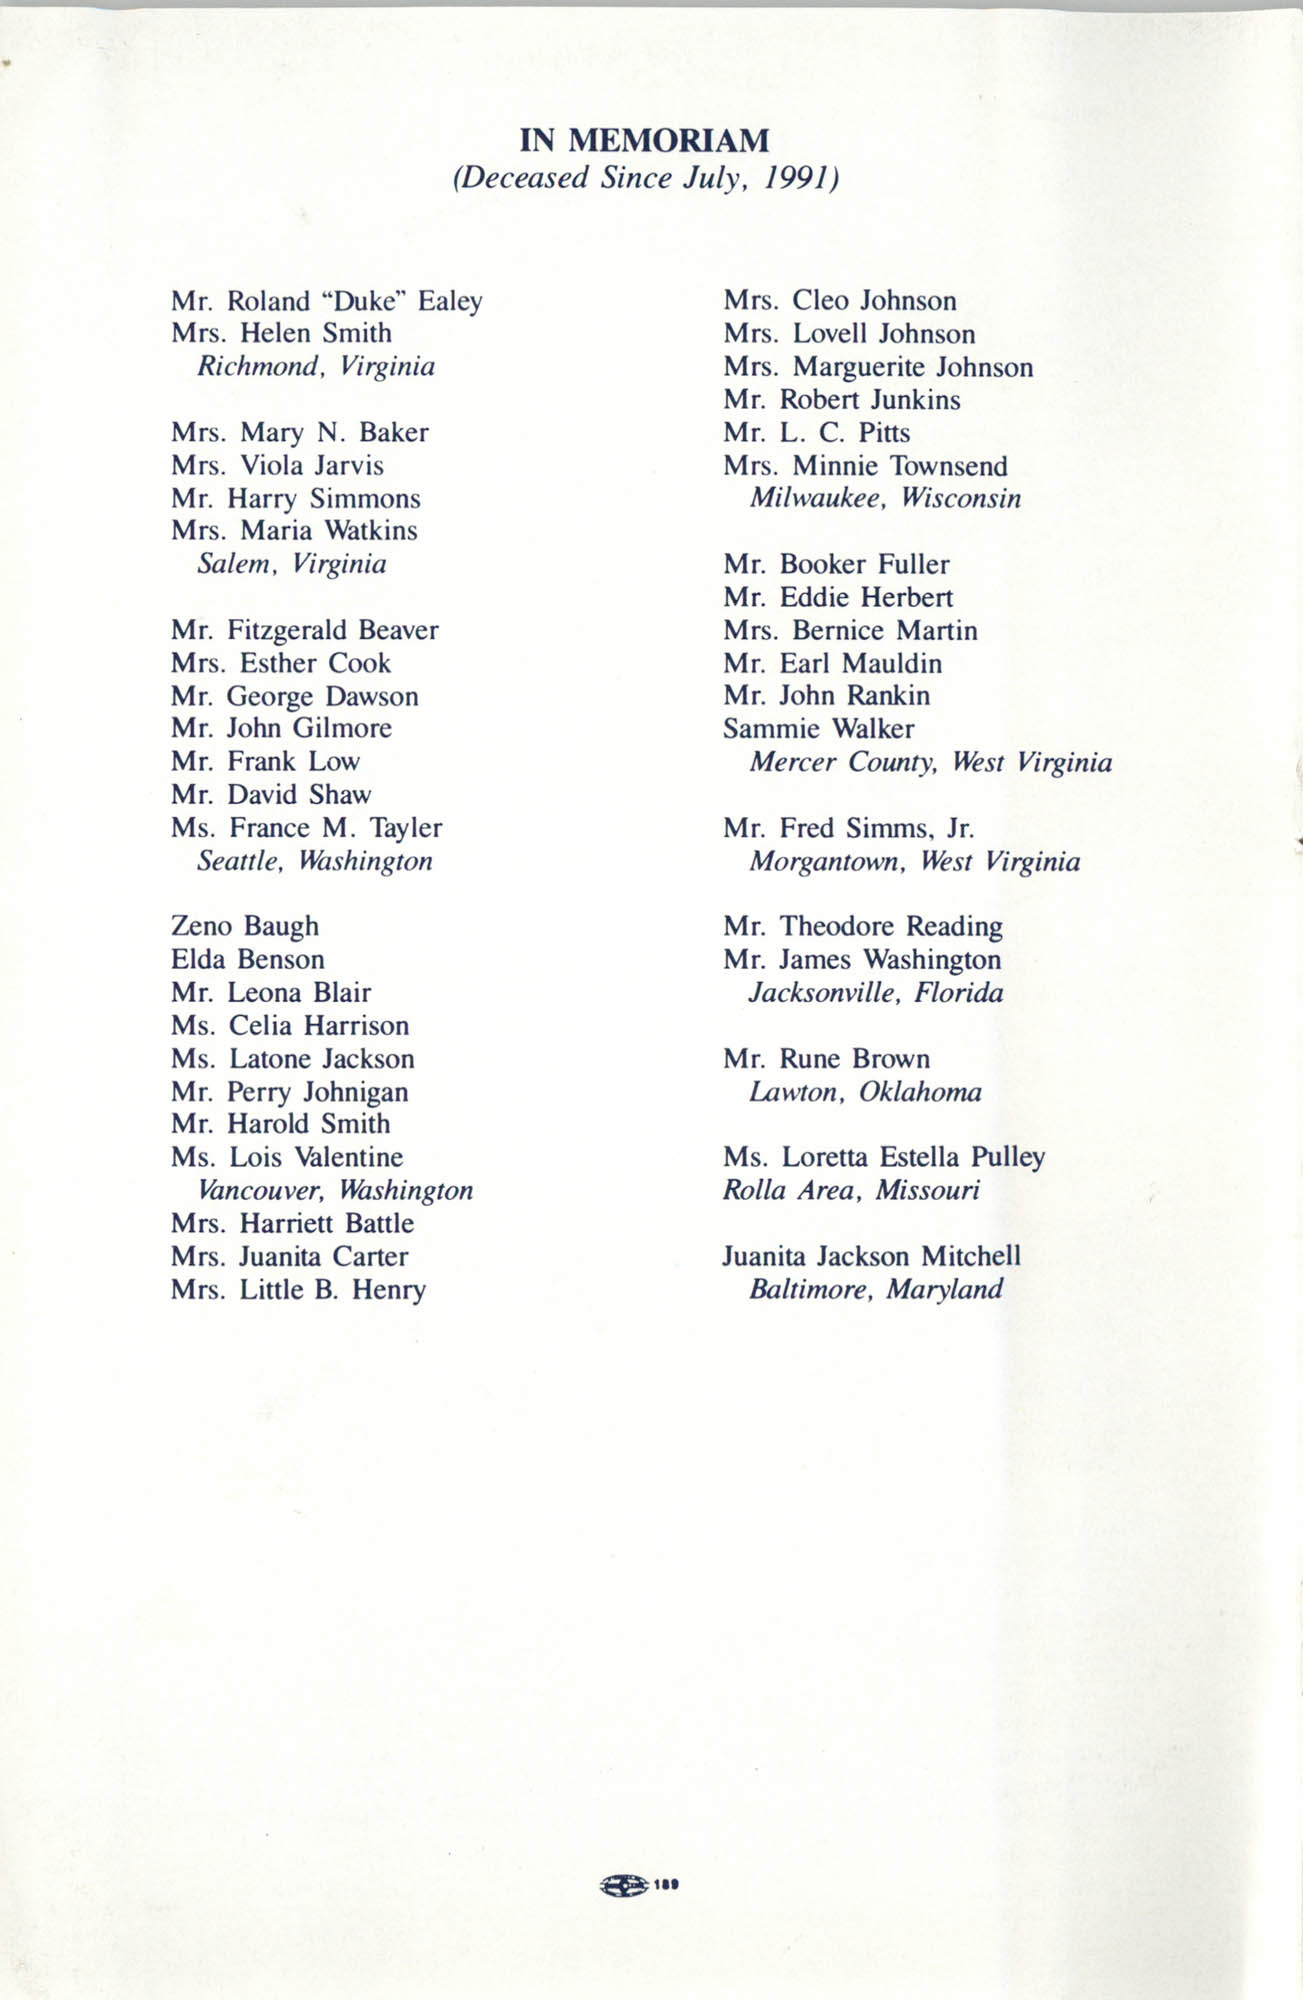 Memorial Service in Tribute to Deceased NAACP Officers and Member, July 12, 1992, Page 11